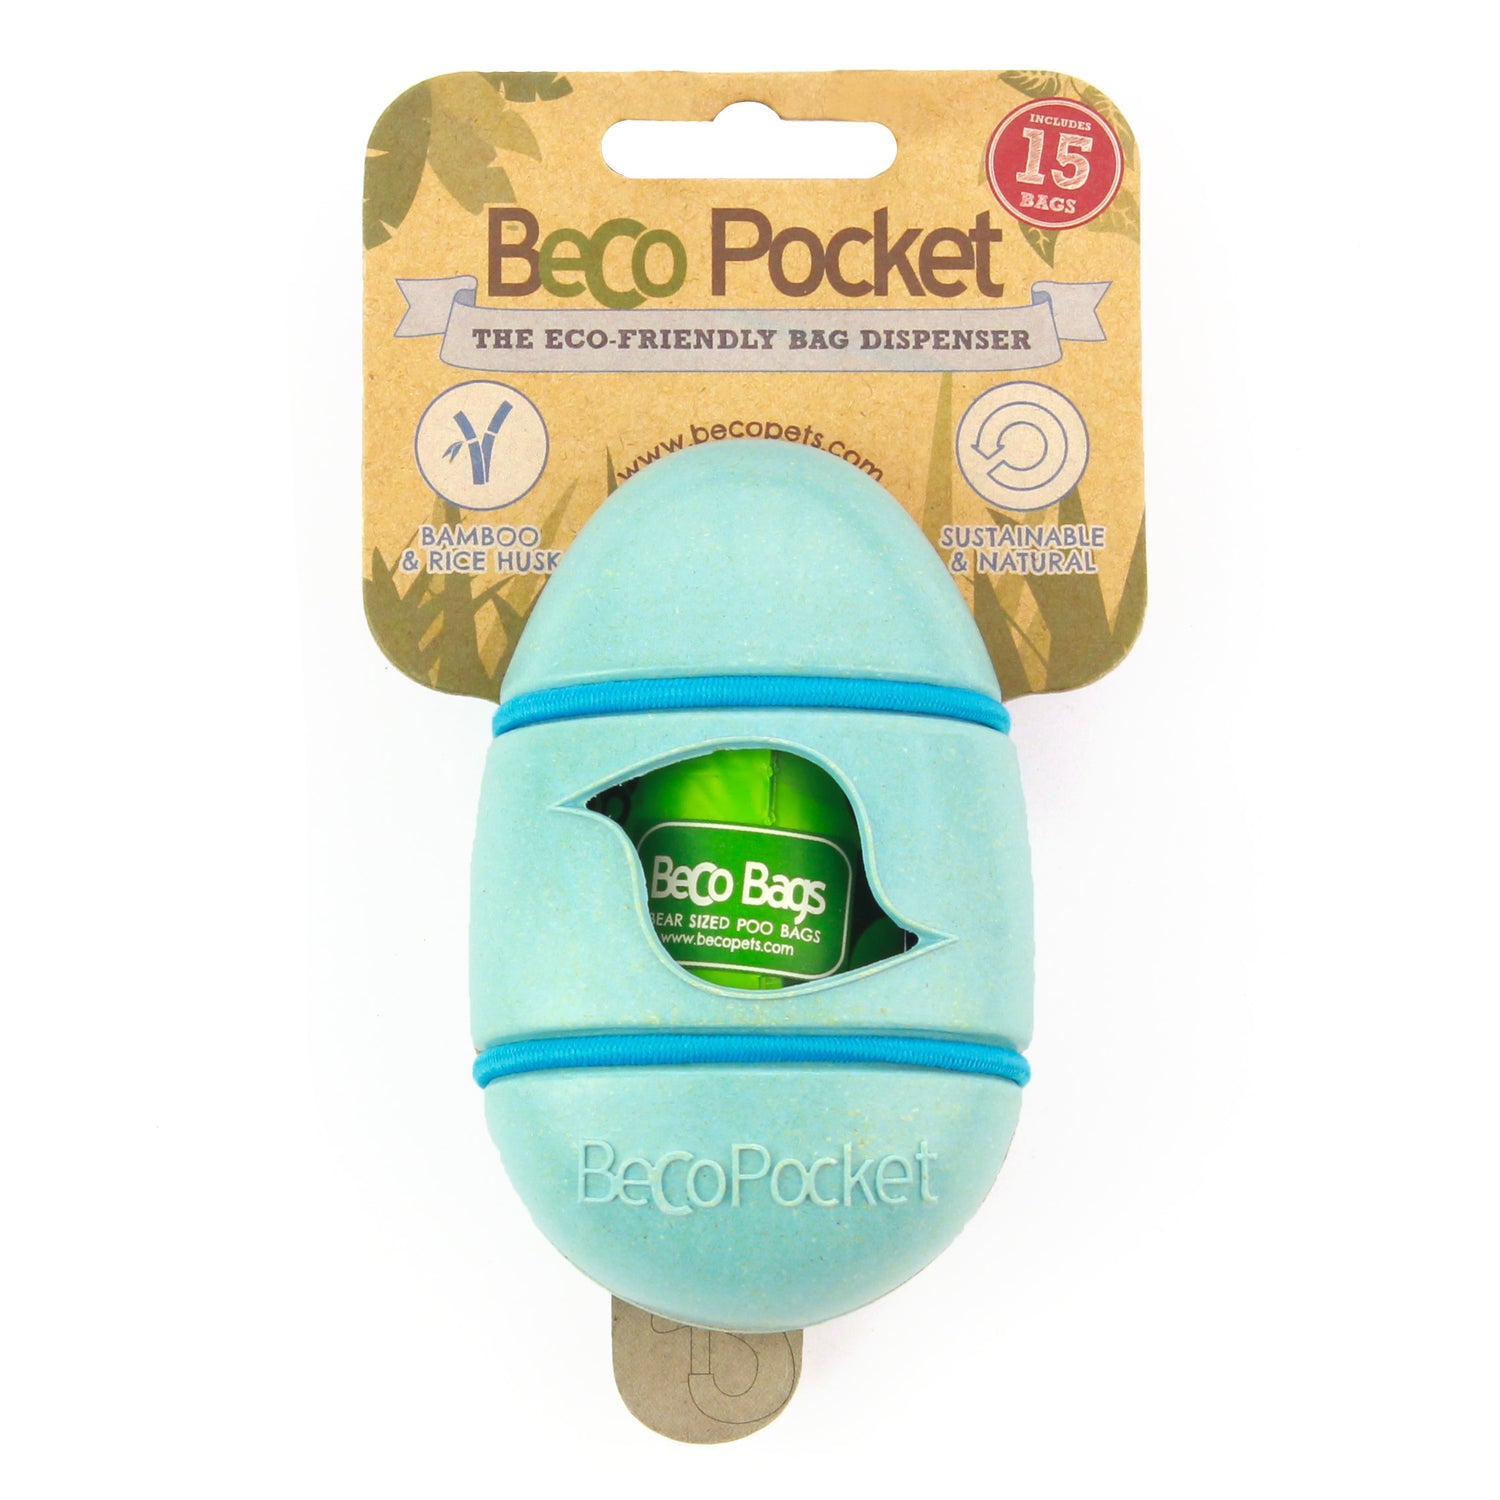 Beco Pocket Poop Bag Dispenser